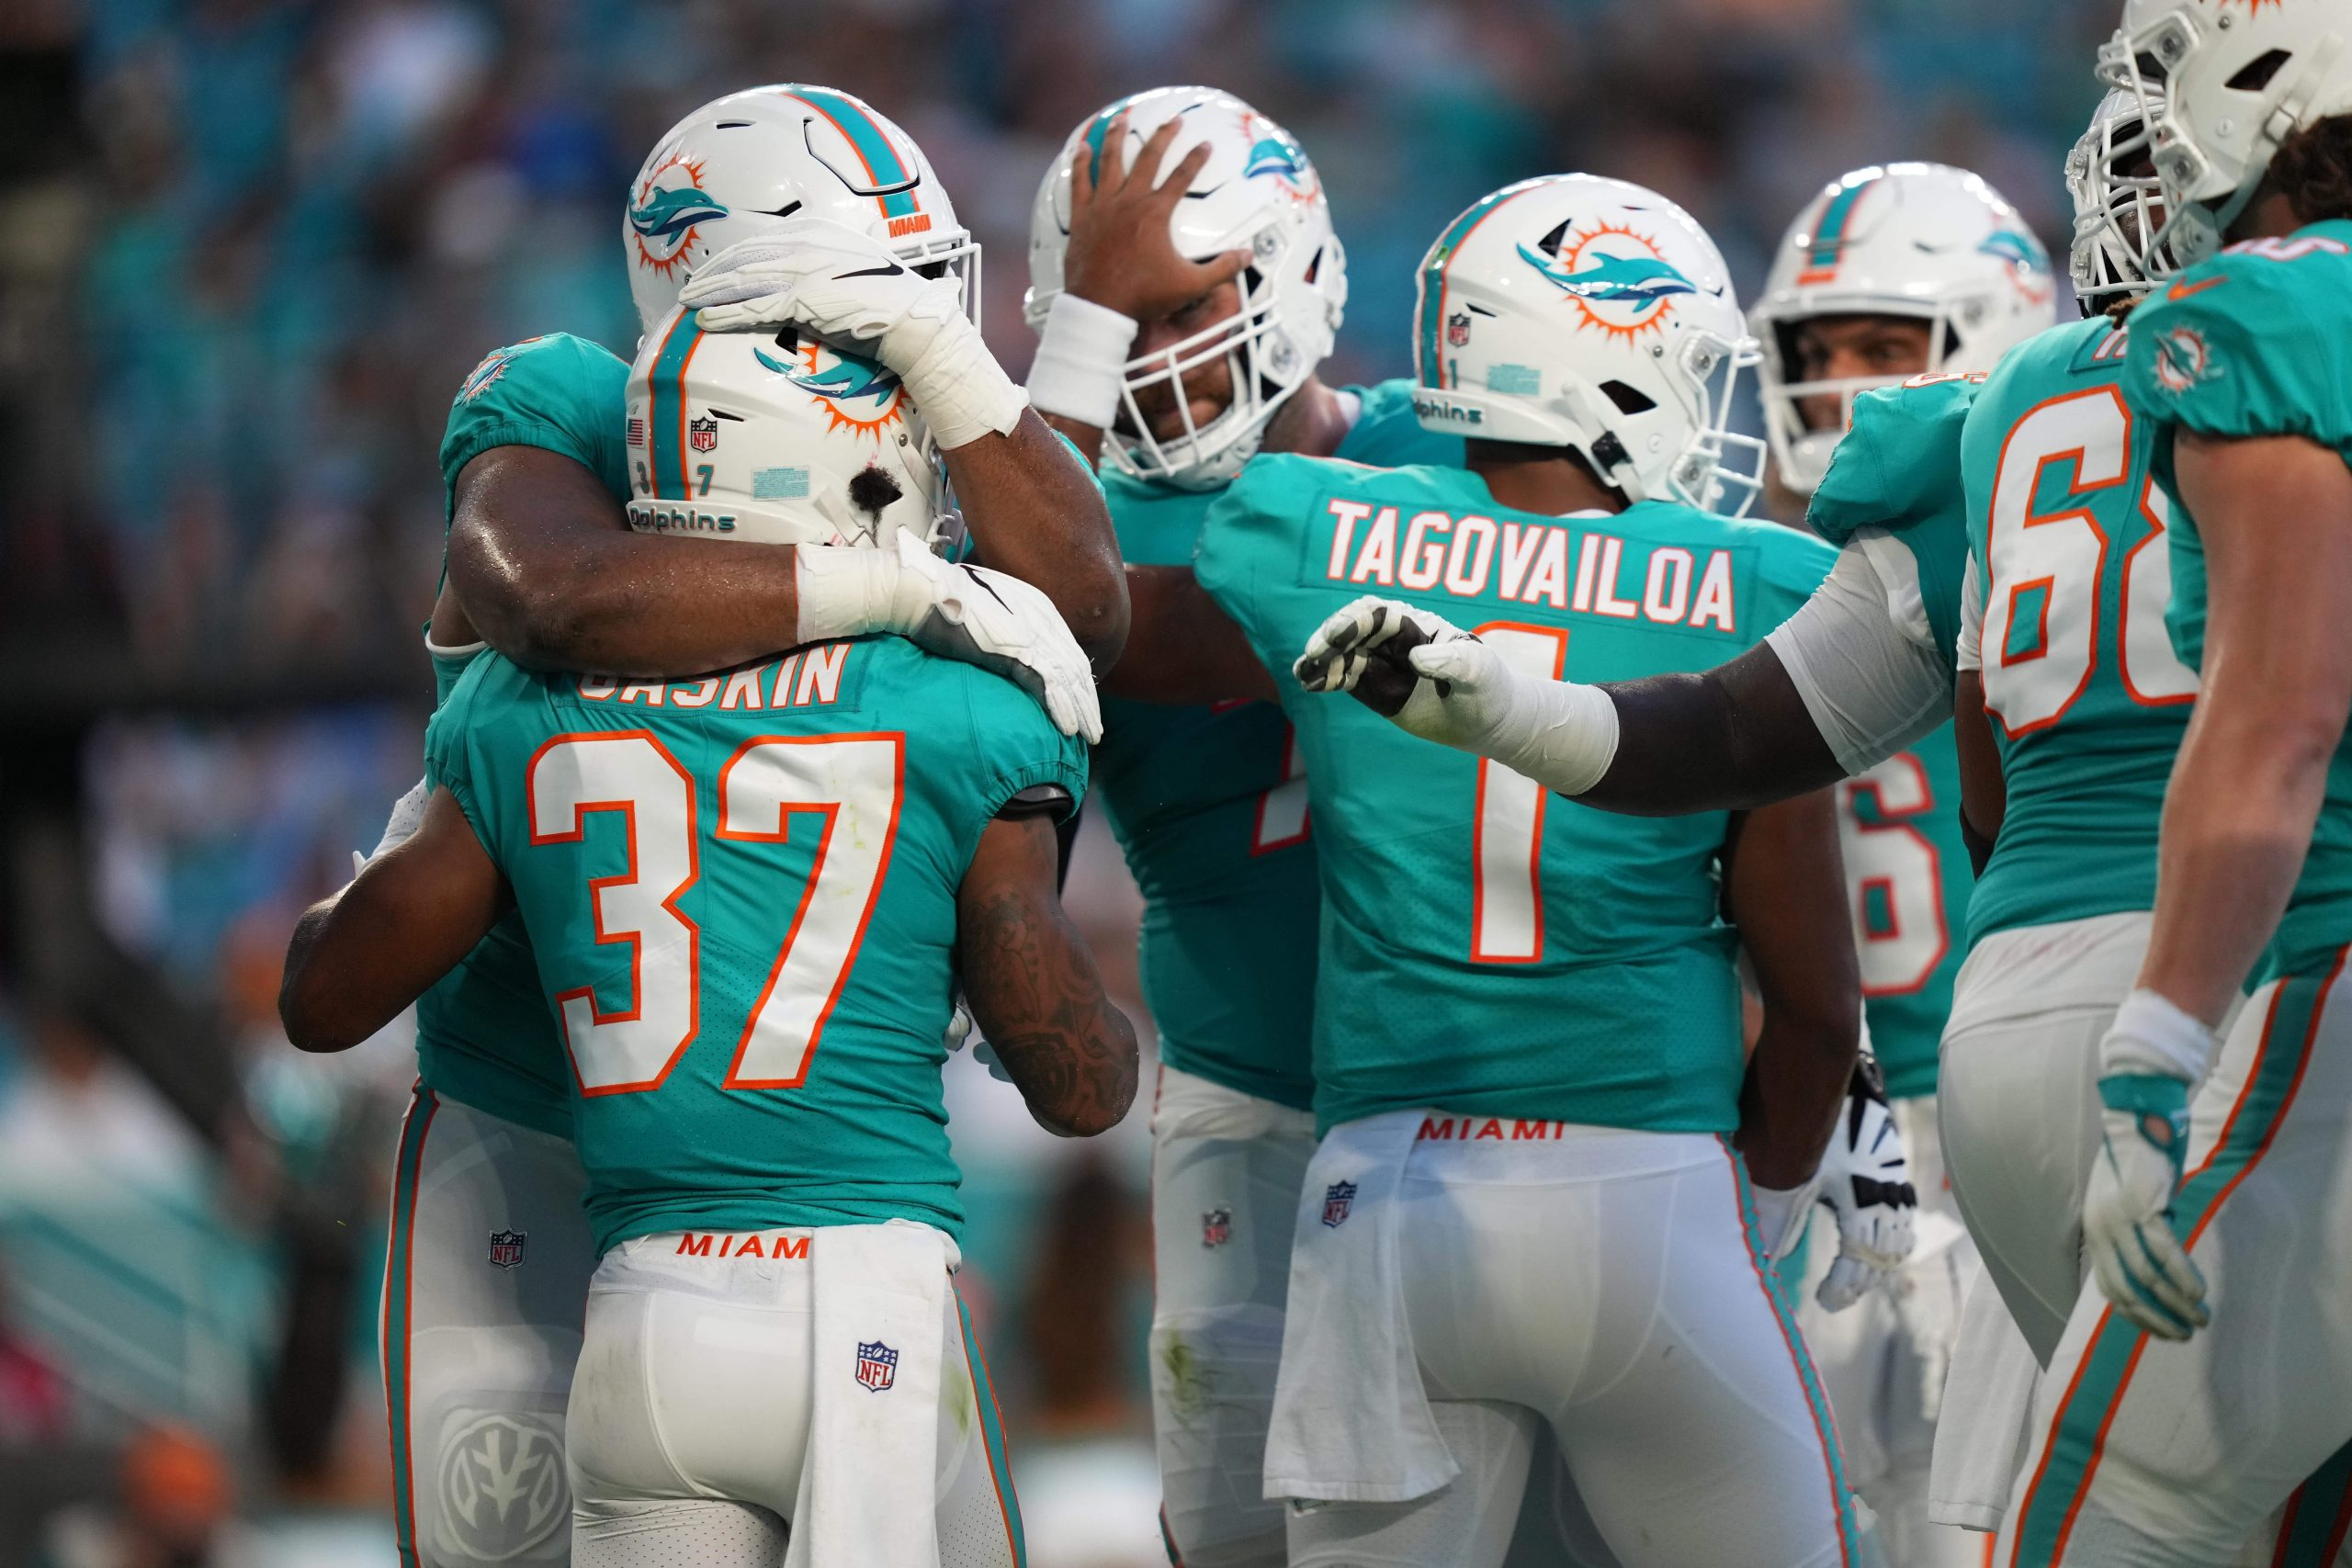 Miami Dolphins running back Myles Gaskin (37) celebrates after scoring a touchdown against the Atlanta Falcons during the first half at Hard Rock Stadium.